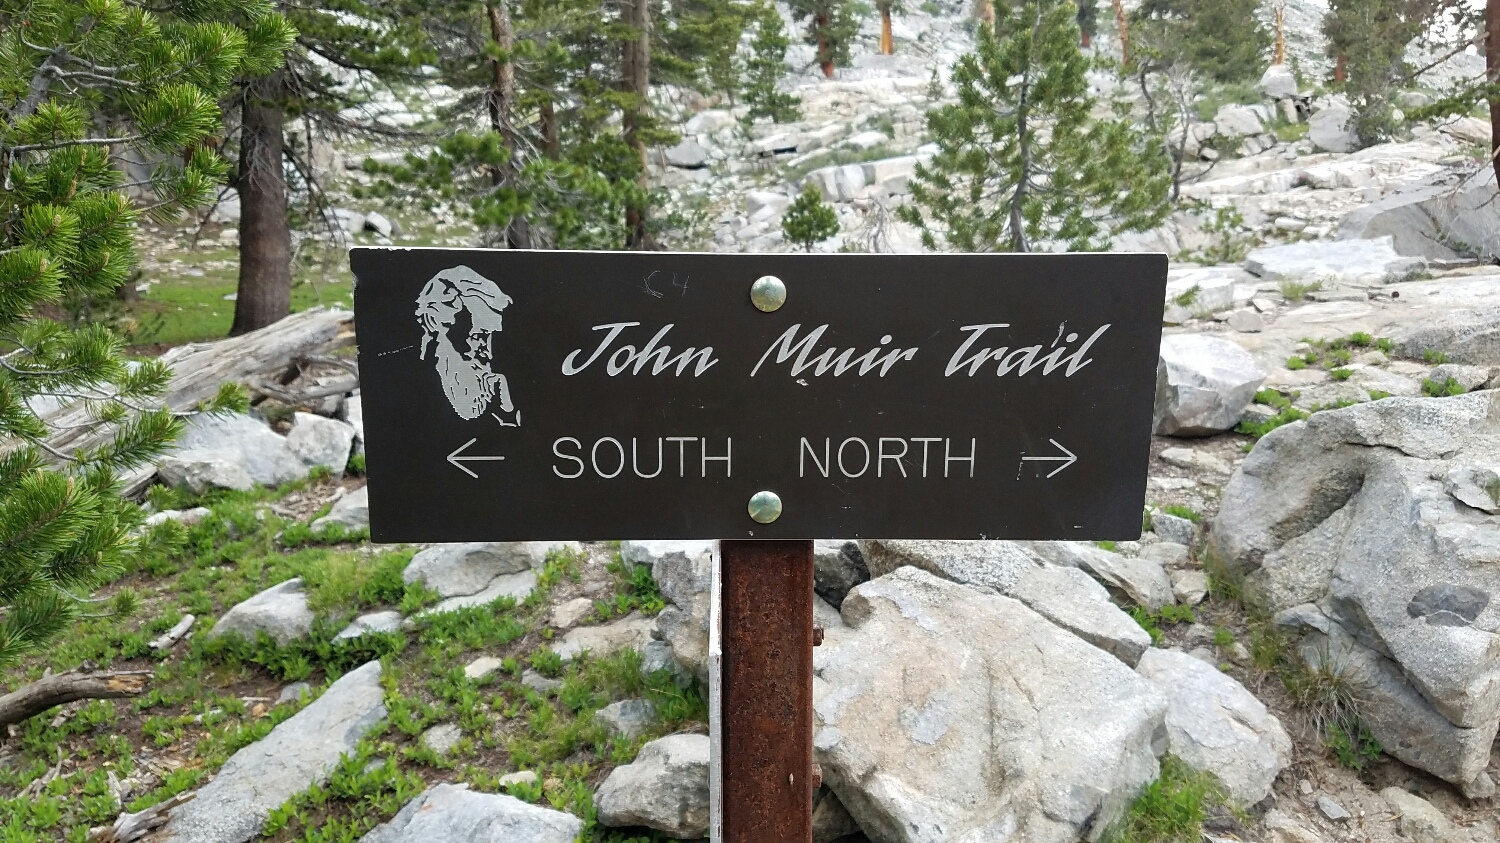 officially on the John Muir Trail!